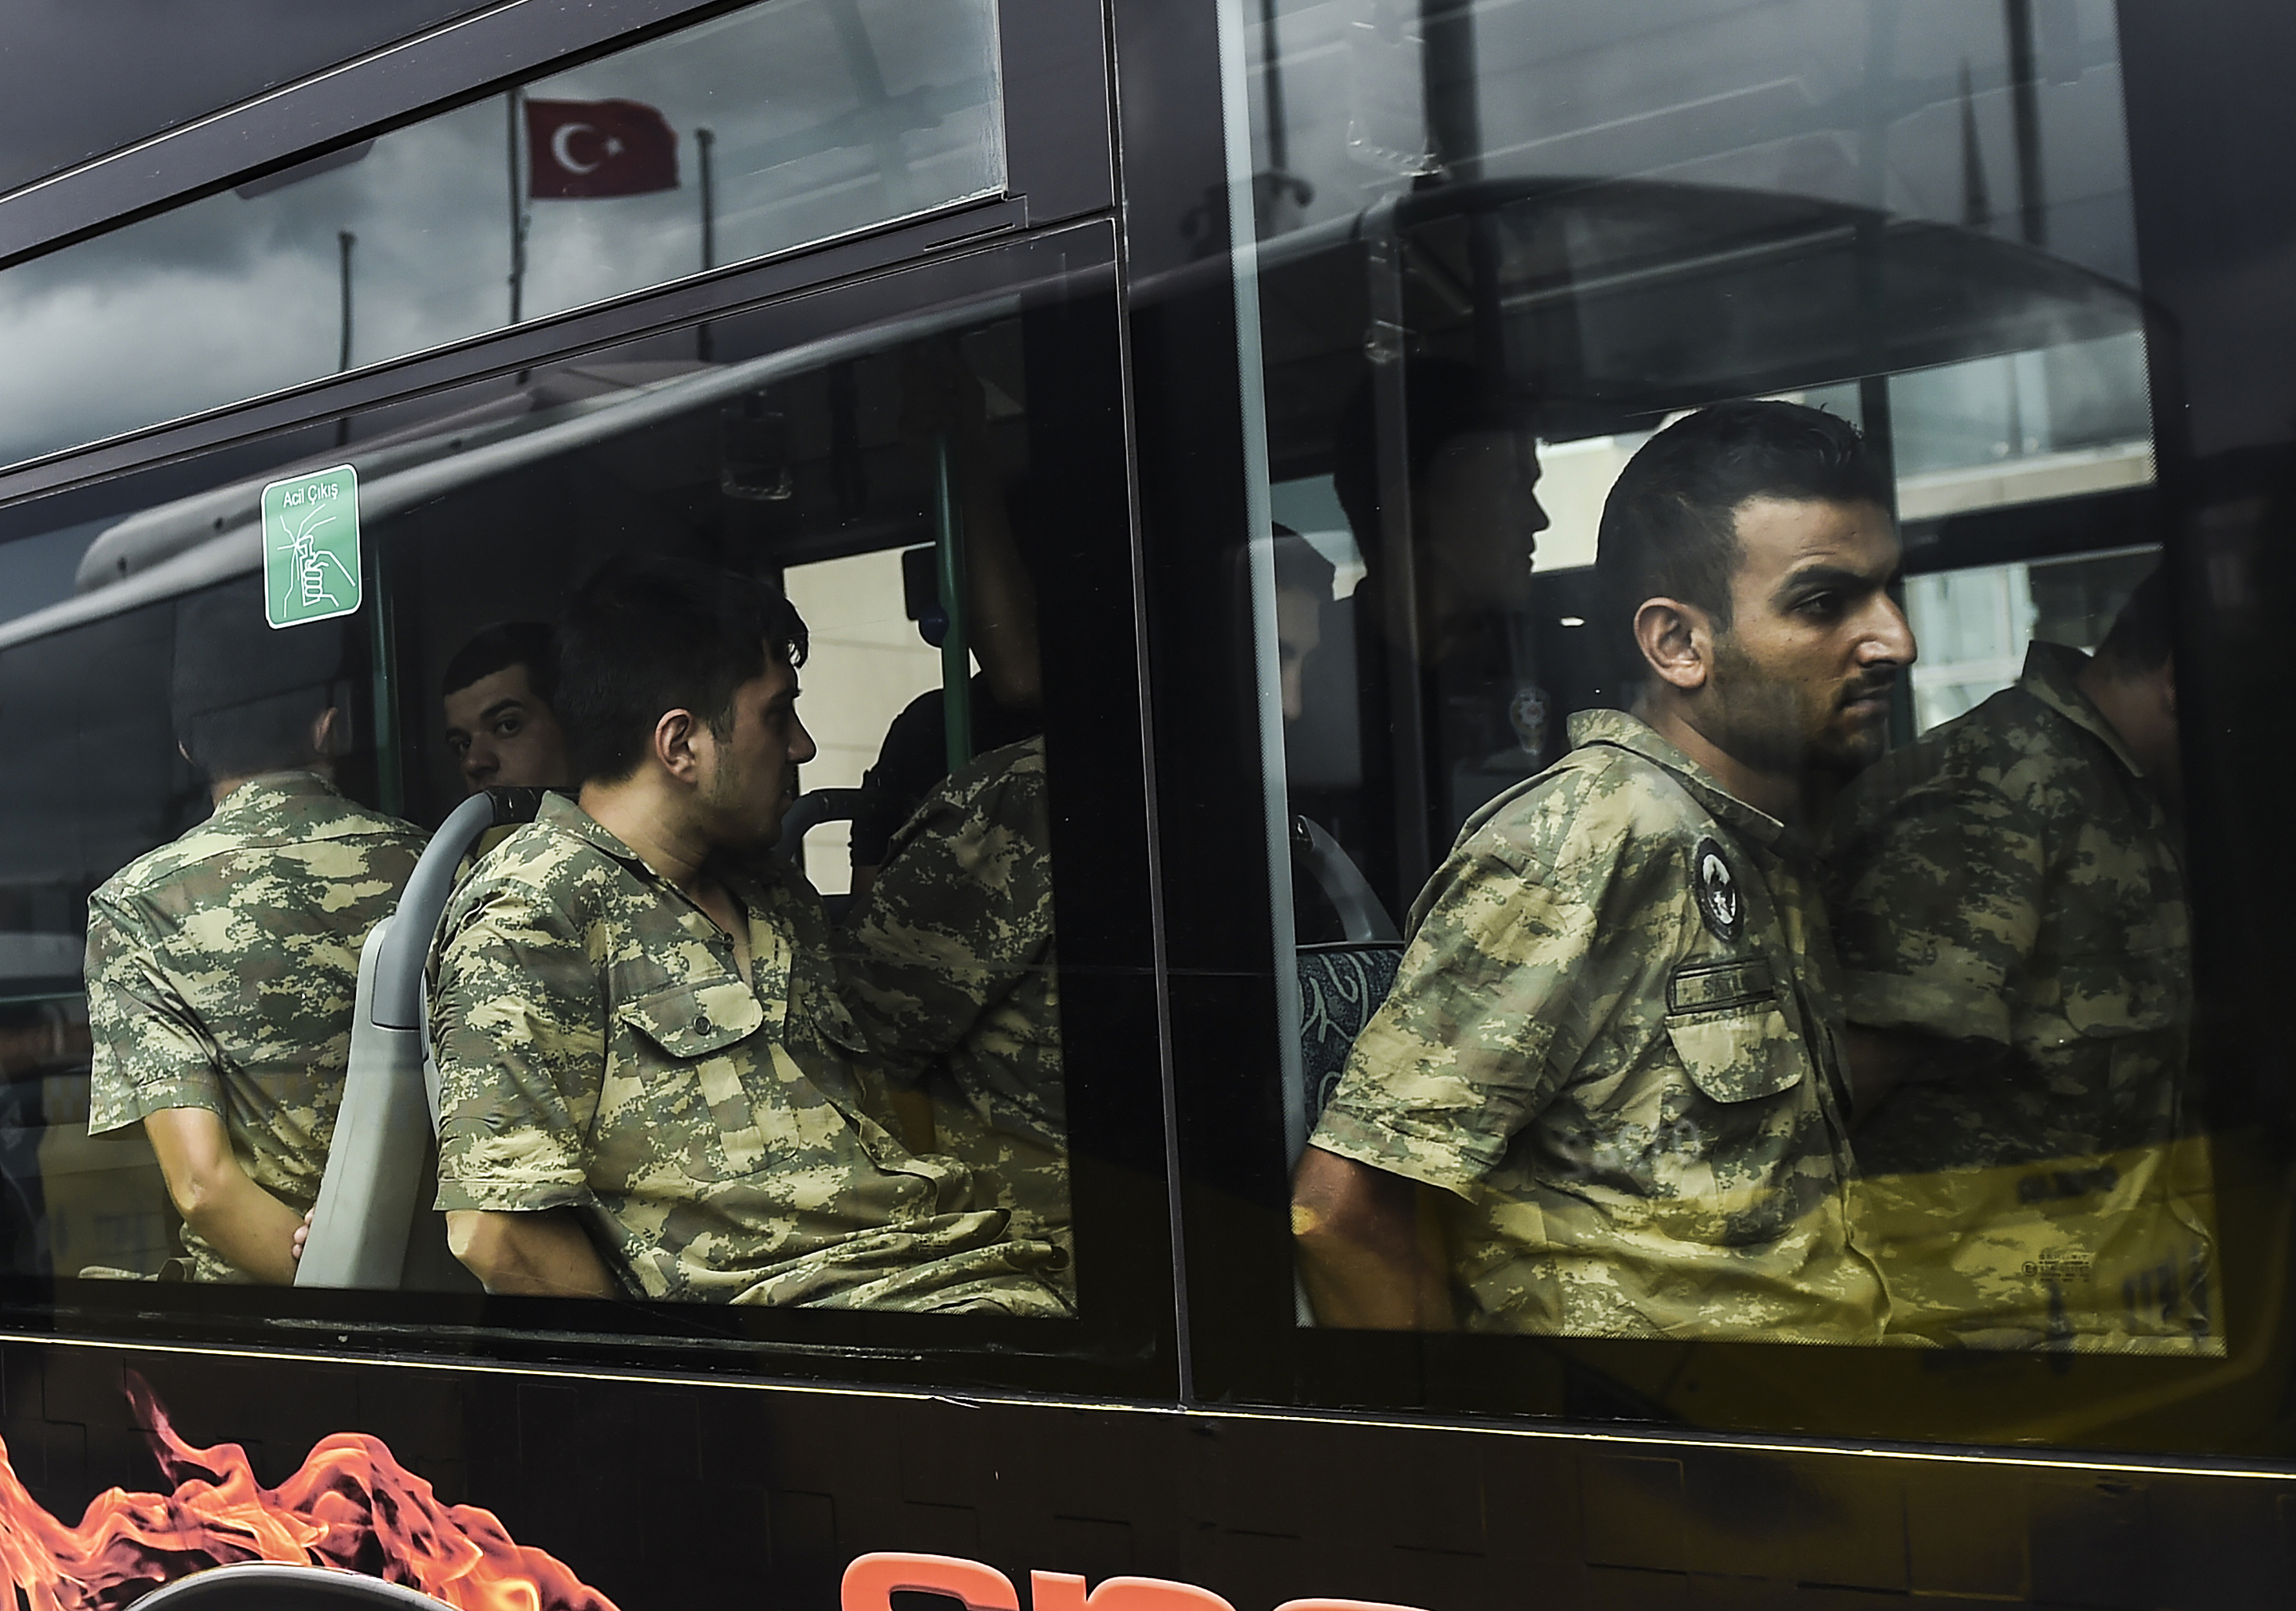 Detained Turkish soldiers who allegedly took part in a military coup arrive in a bus at the courthouse in Istanbul on July 20, 2016, following the military coup attempt of July 15.